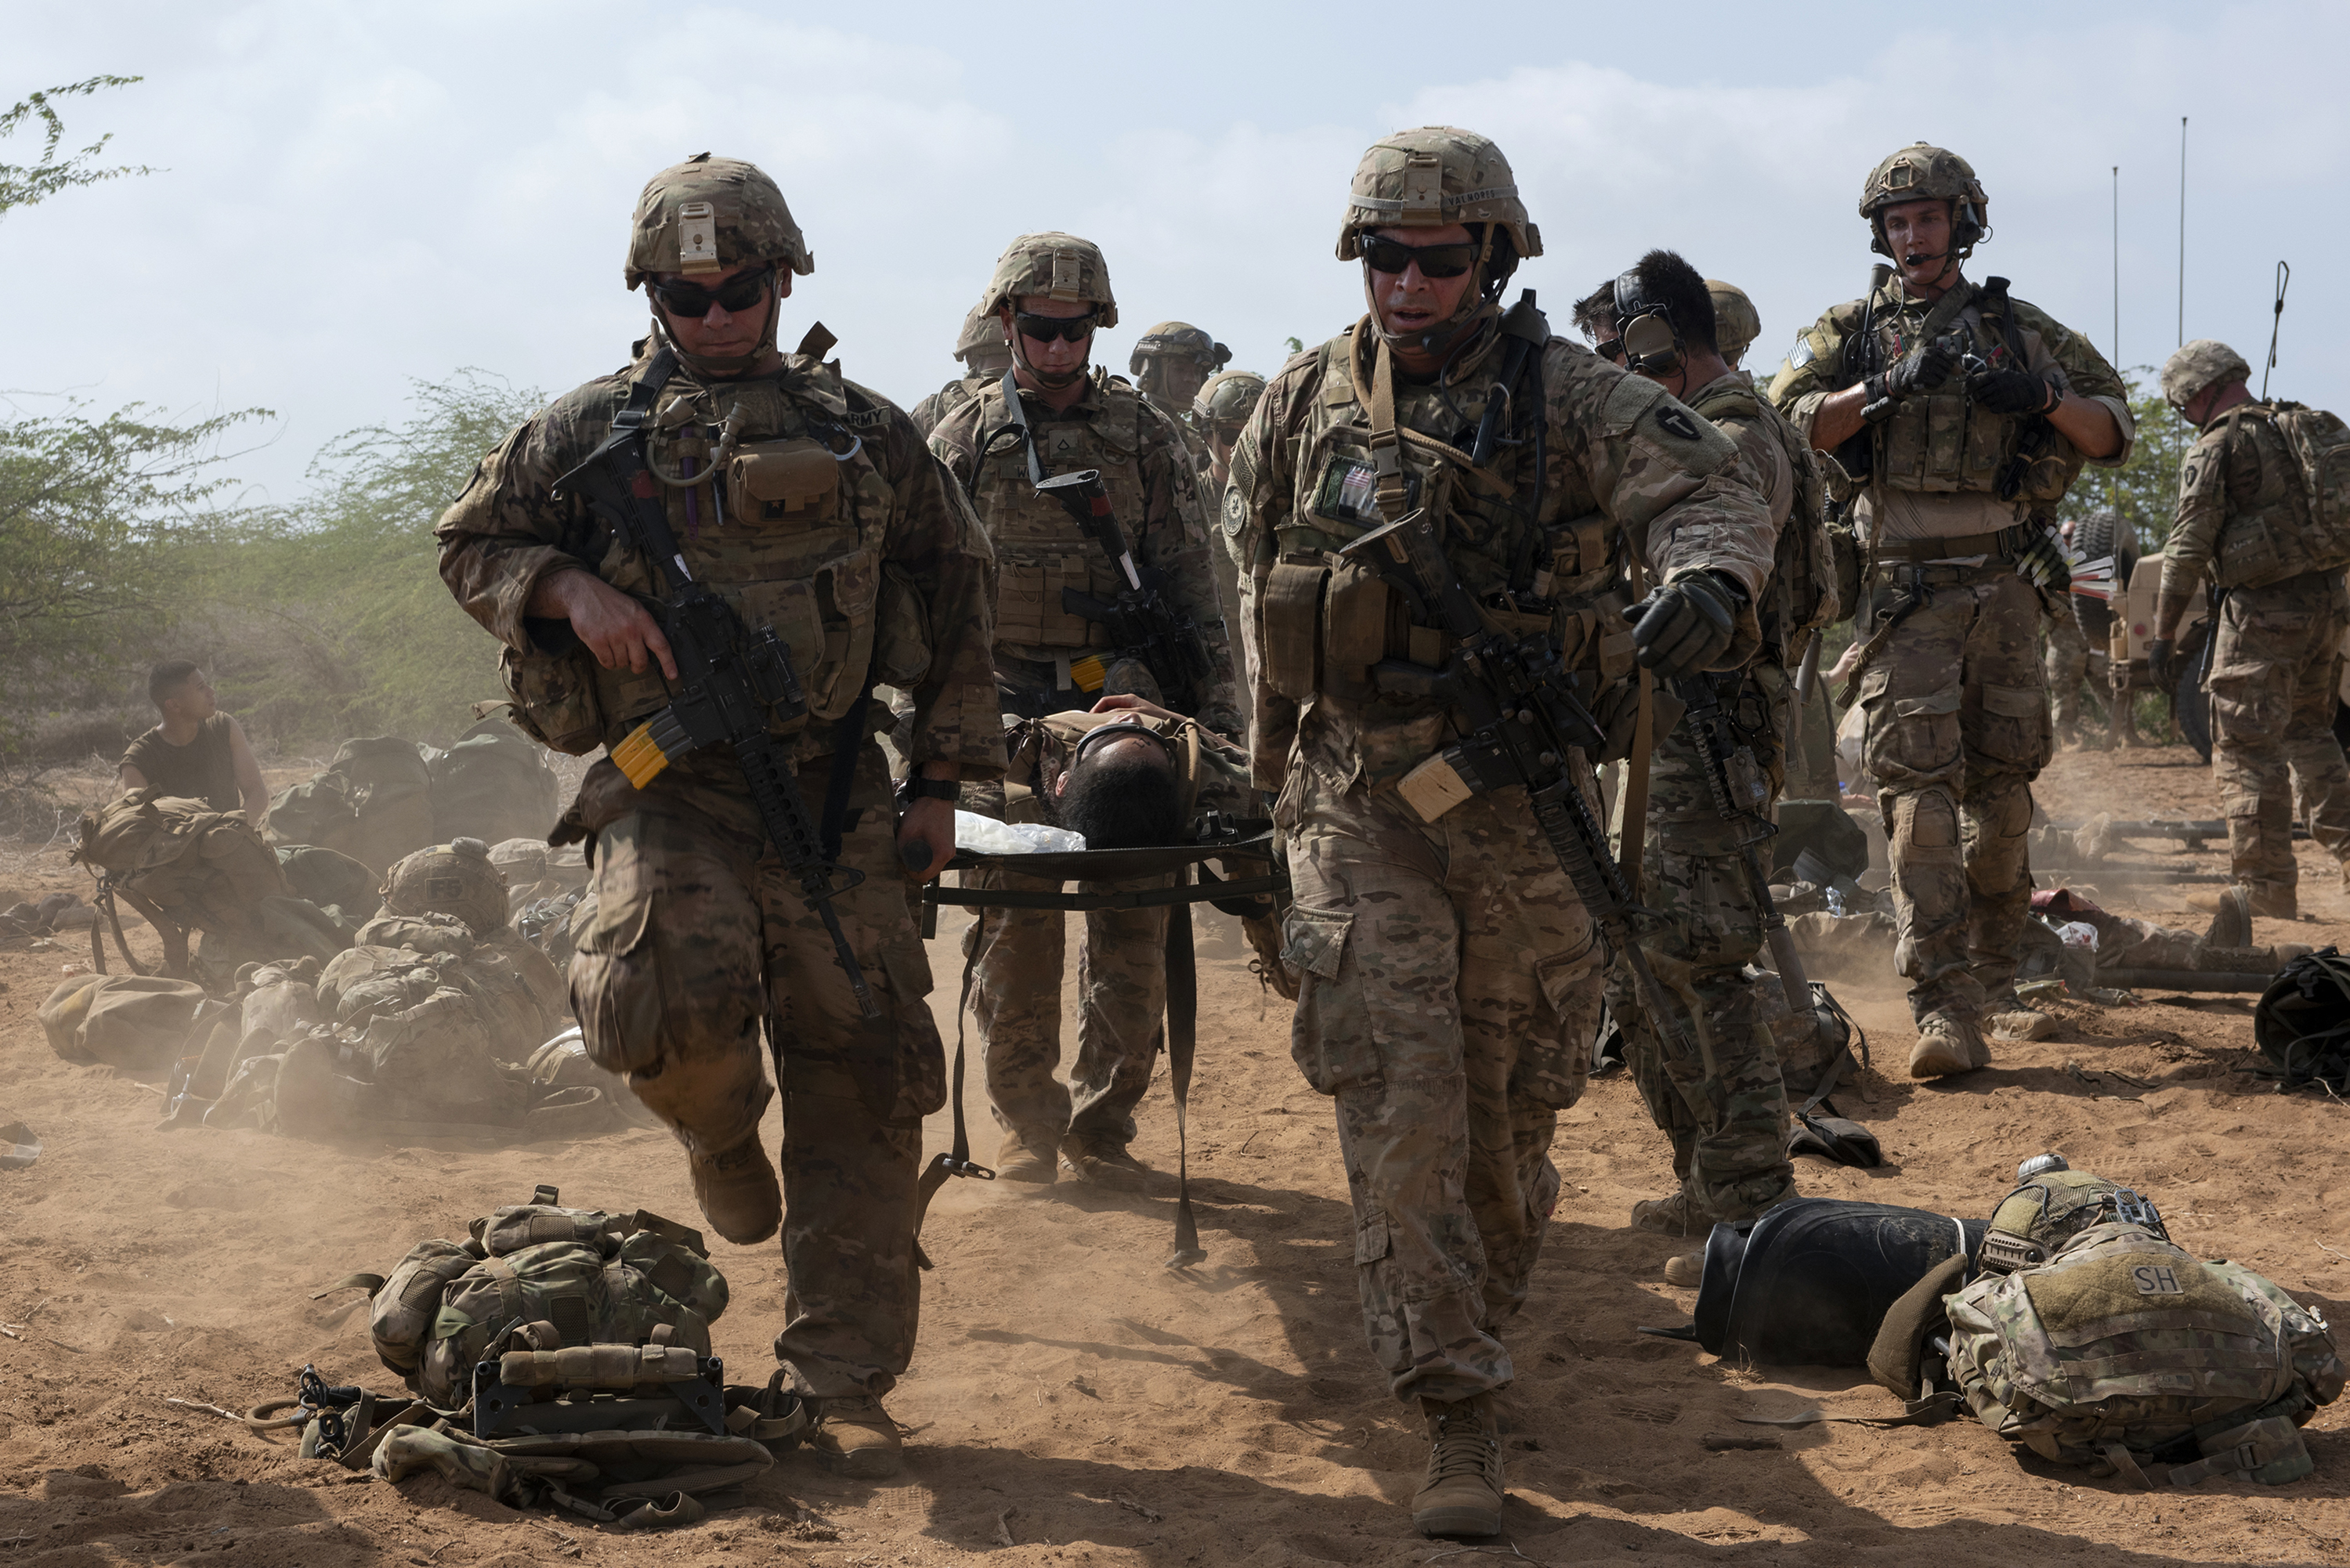 U.S. Soldiers with 3rd Battalion, 144th Infantry Regiment, Texas Army National Guard, transport a simulated casualty on a litter in Djibouti City, Djibouti, April 24, 2018. As part of a joint mass casualty training exercise, service members performed various tasks in order to locate, secure and rescue simulated casualties. (U.S. Air National Guard photo by Master Sgt. Sarah Mattison)